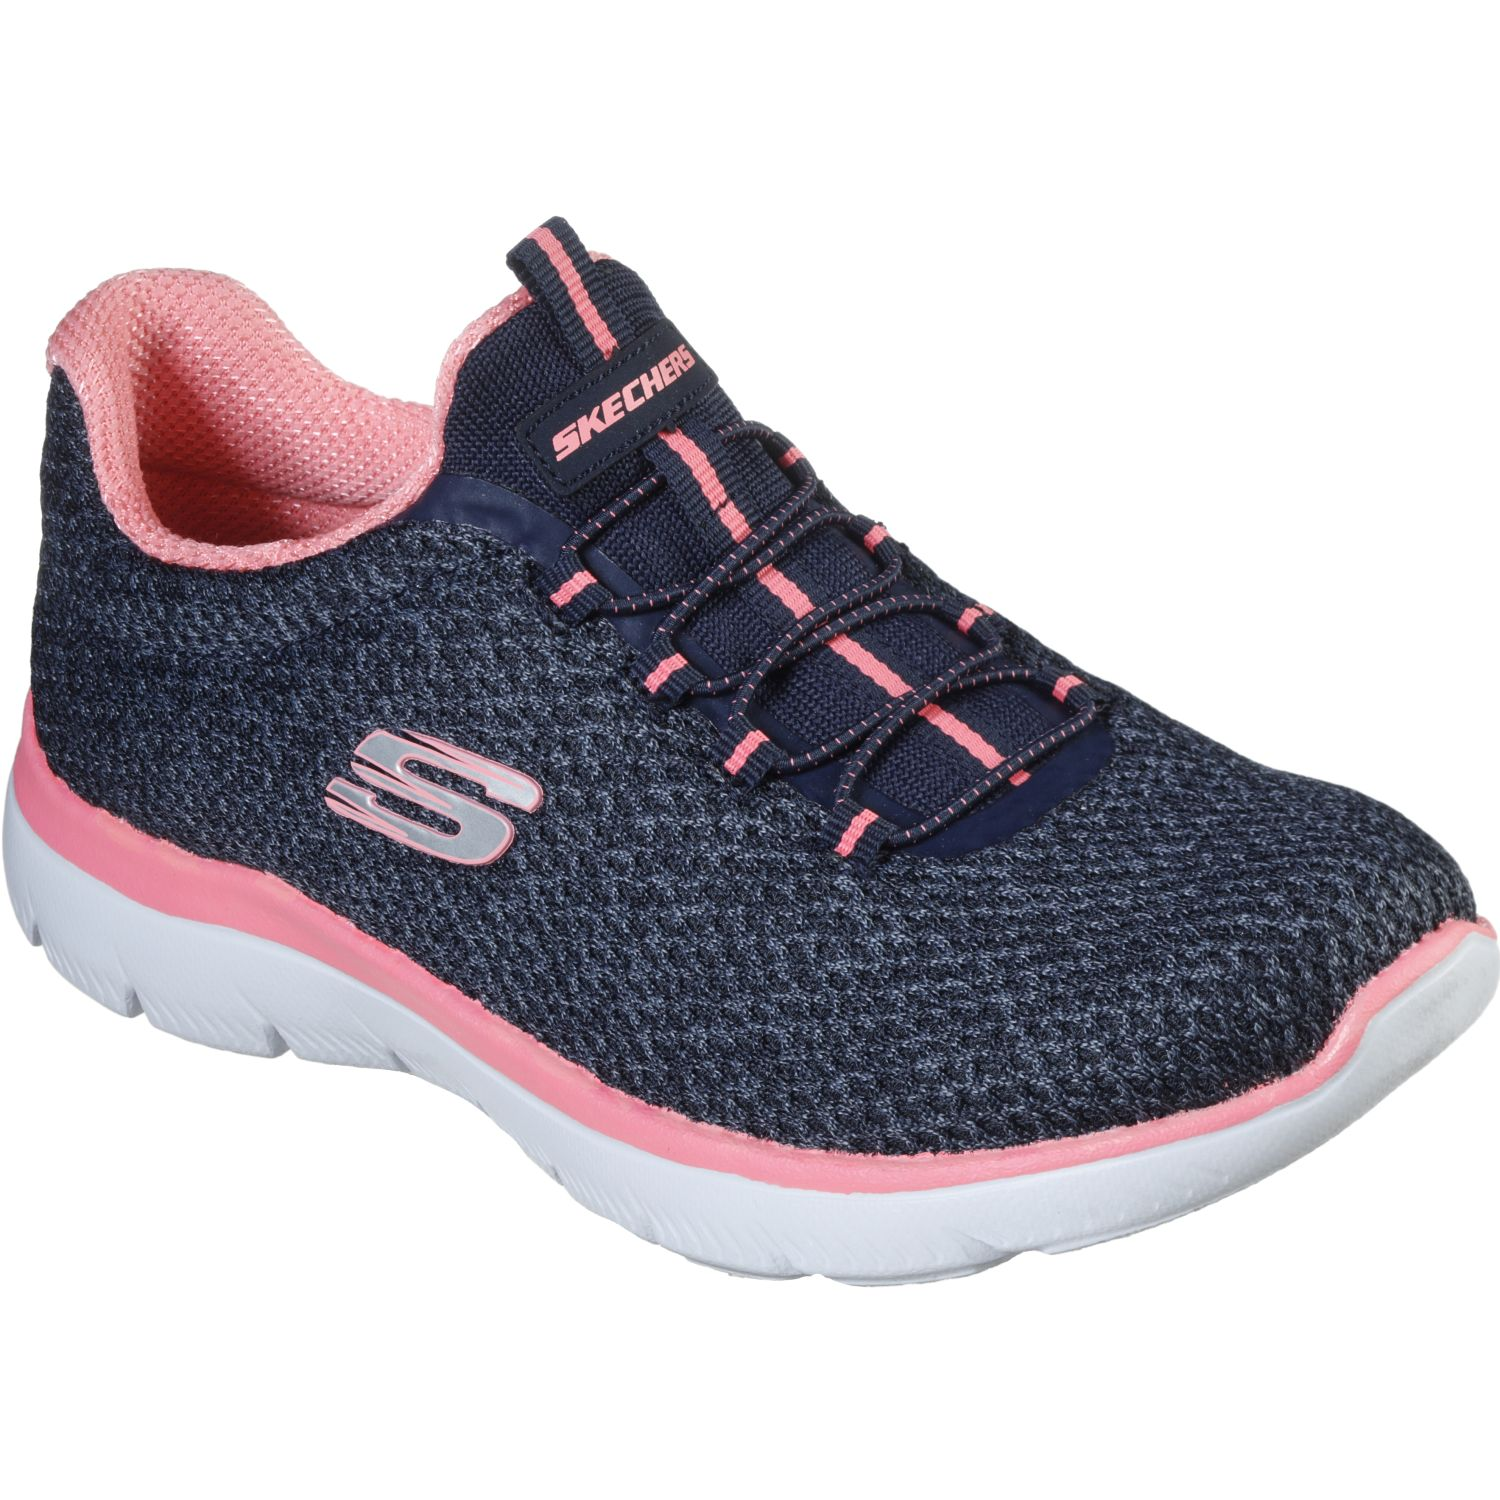 Skechers summits - striding Navy / Rosado Walking